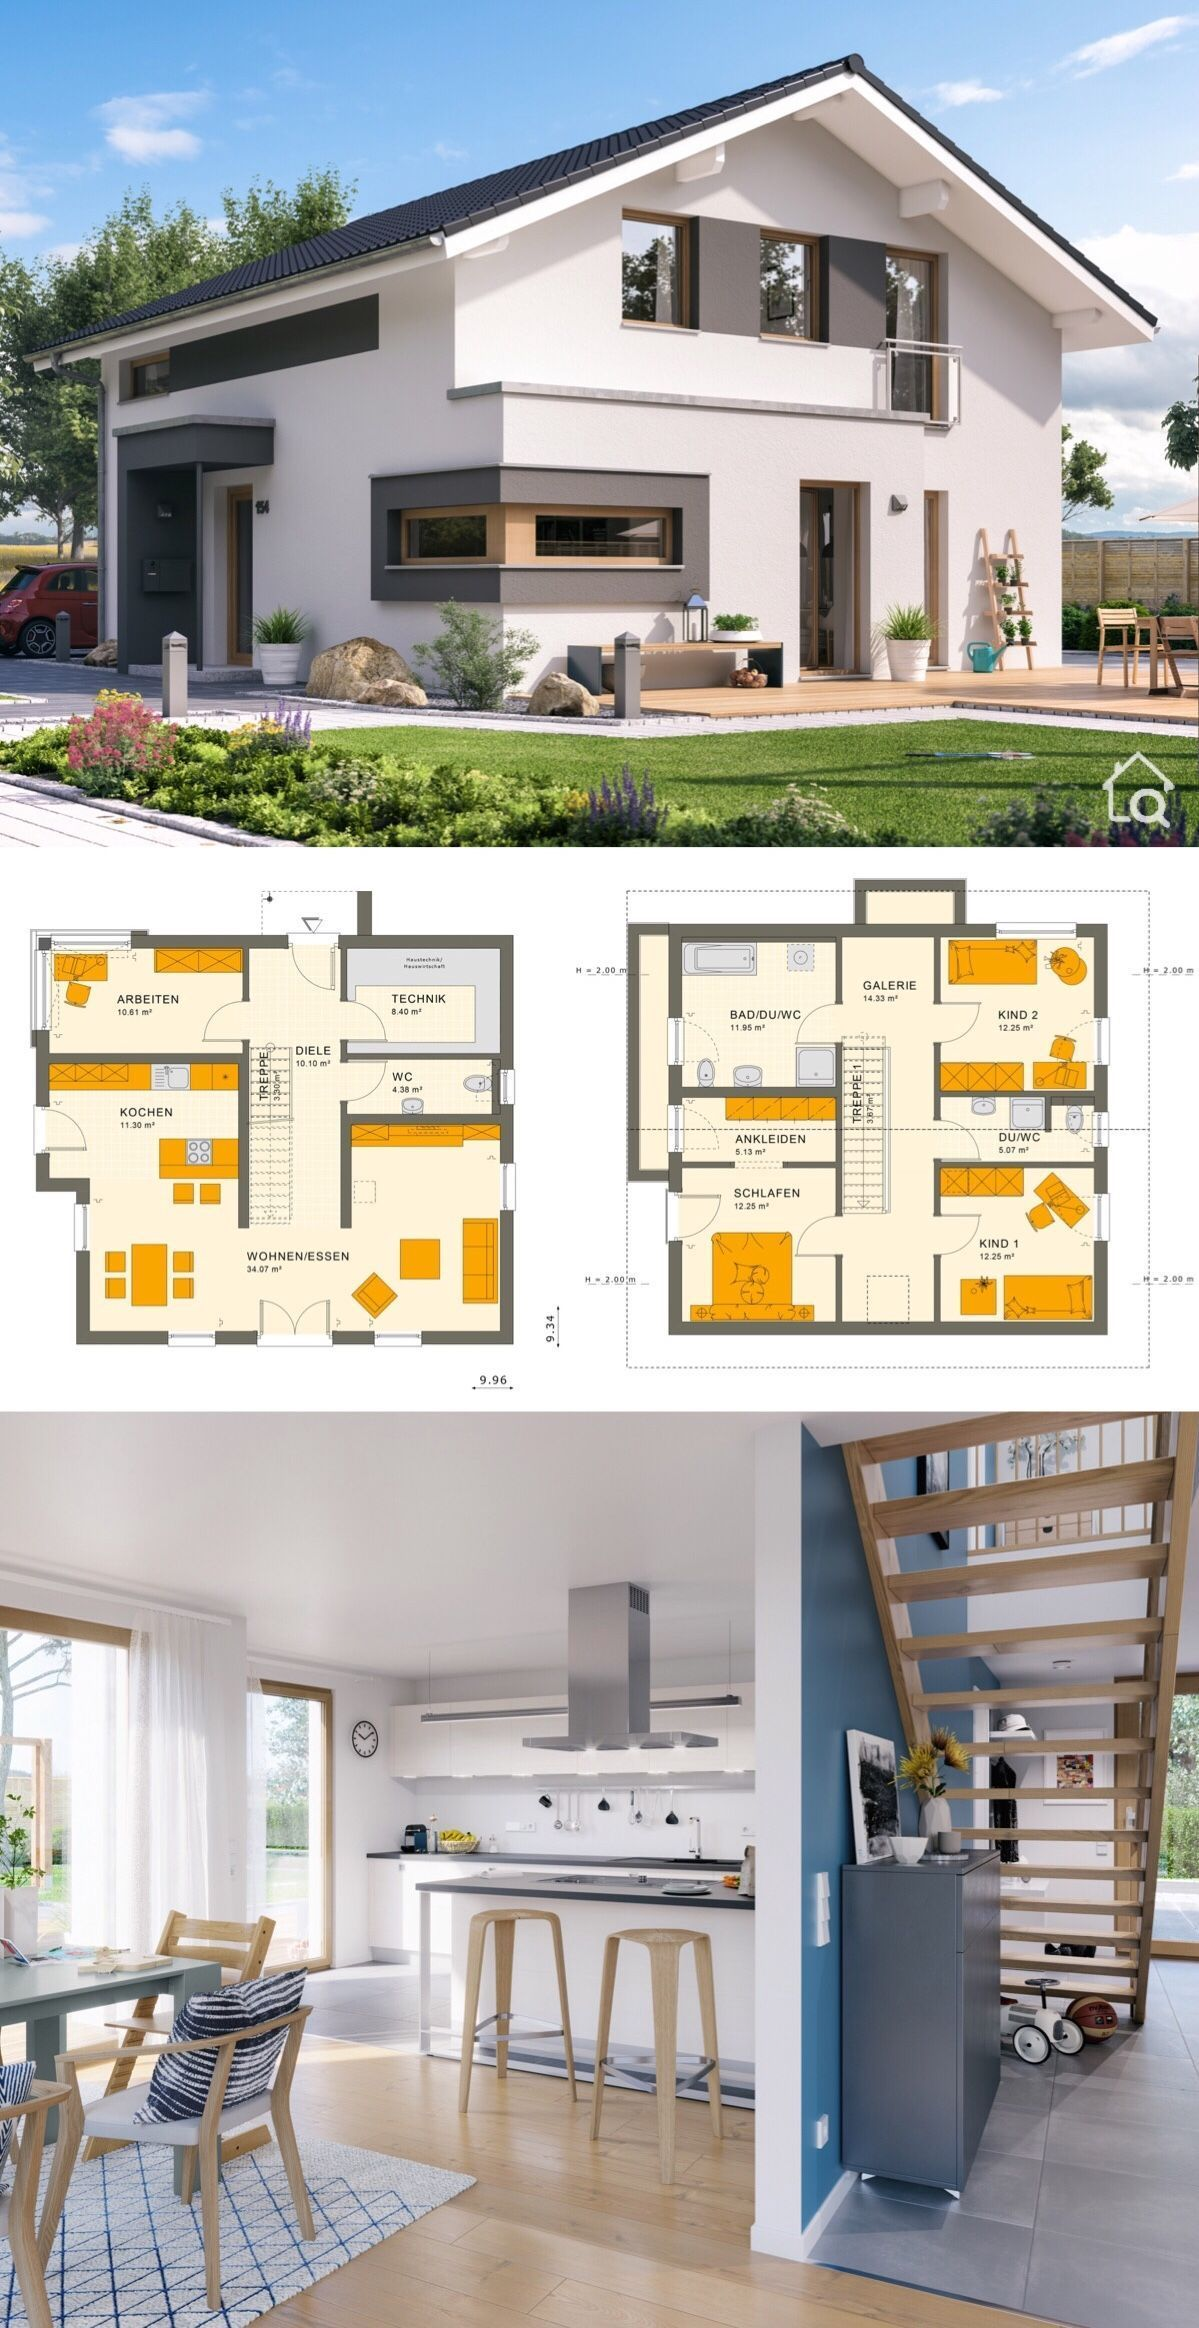 Einfamilienhaus Neubau Modern Two Floor House Plans With 4 Bedroom Modern Contemporary European Style Architecture Design Sunshine 154 V5 - Dream Homes With Open Concept And Gallery Layout B… | Einfamilienhaus, Haus Design, Bauhausstil Haus